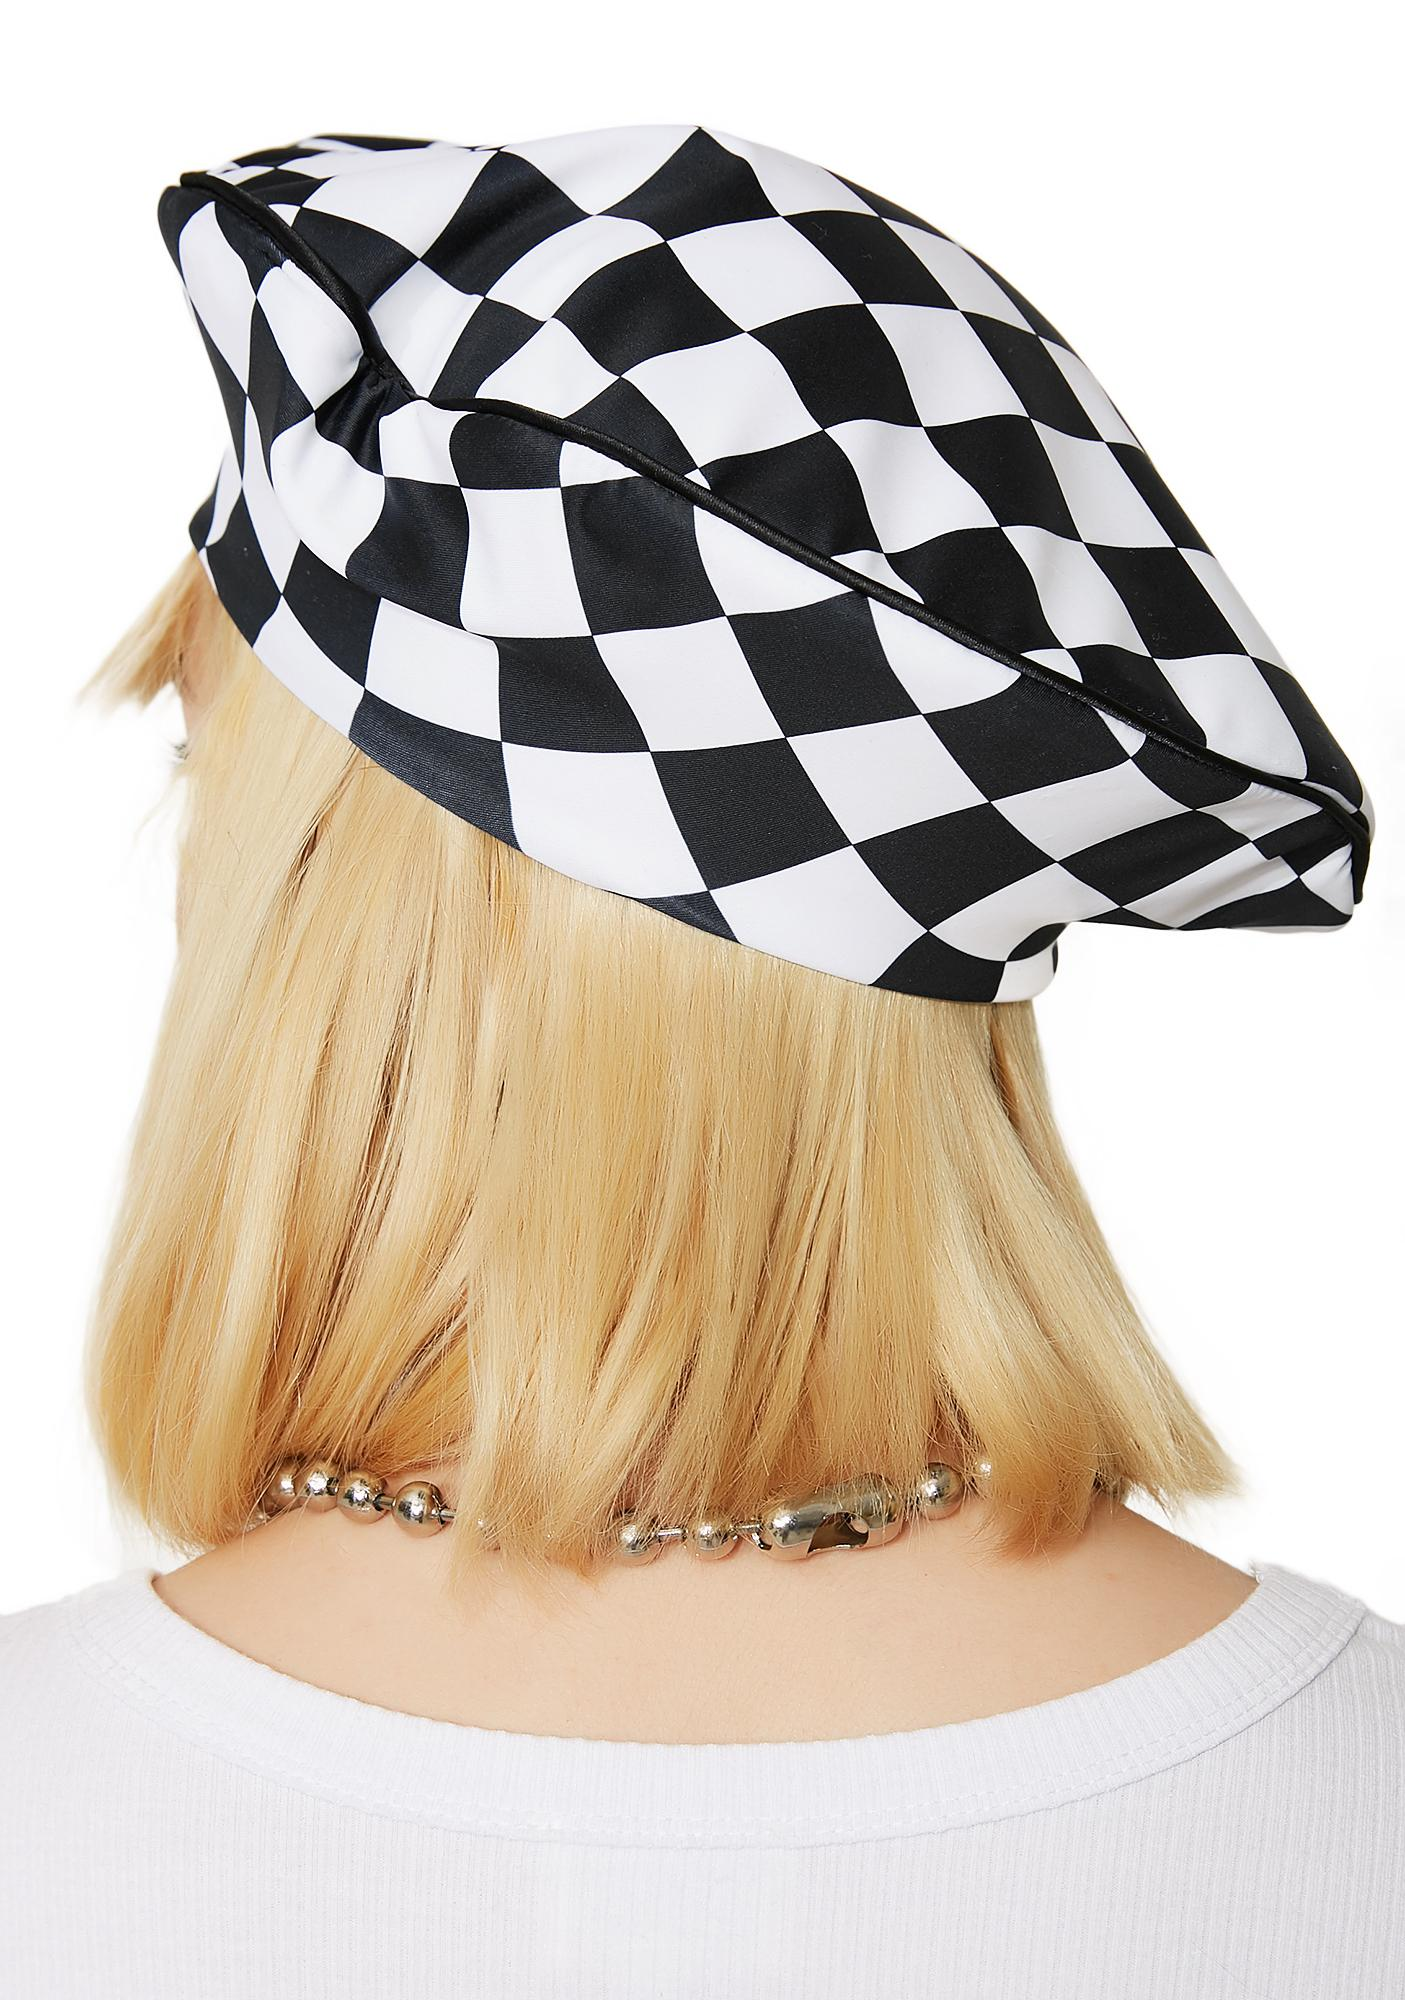 Tailspin Checkered Beret